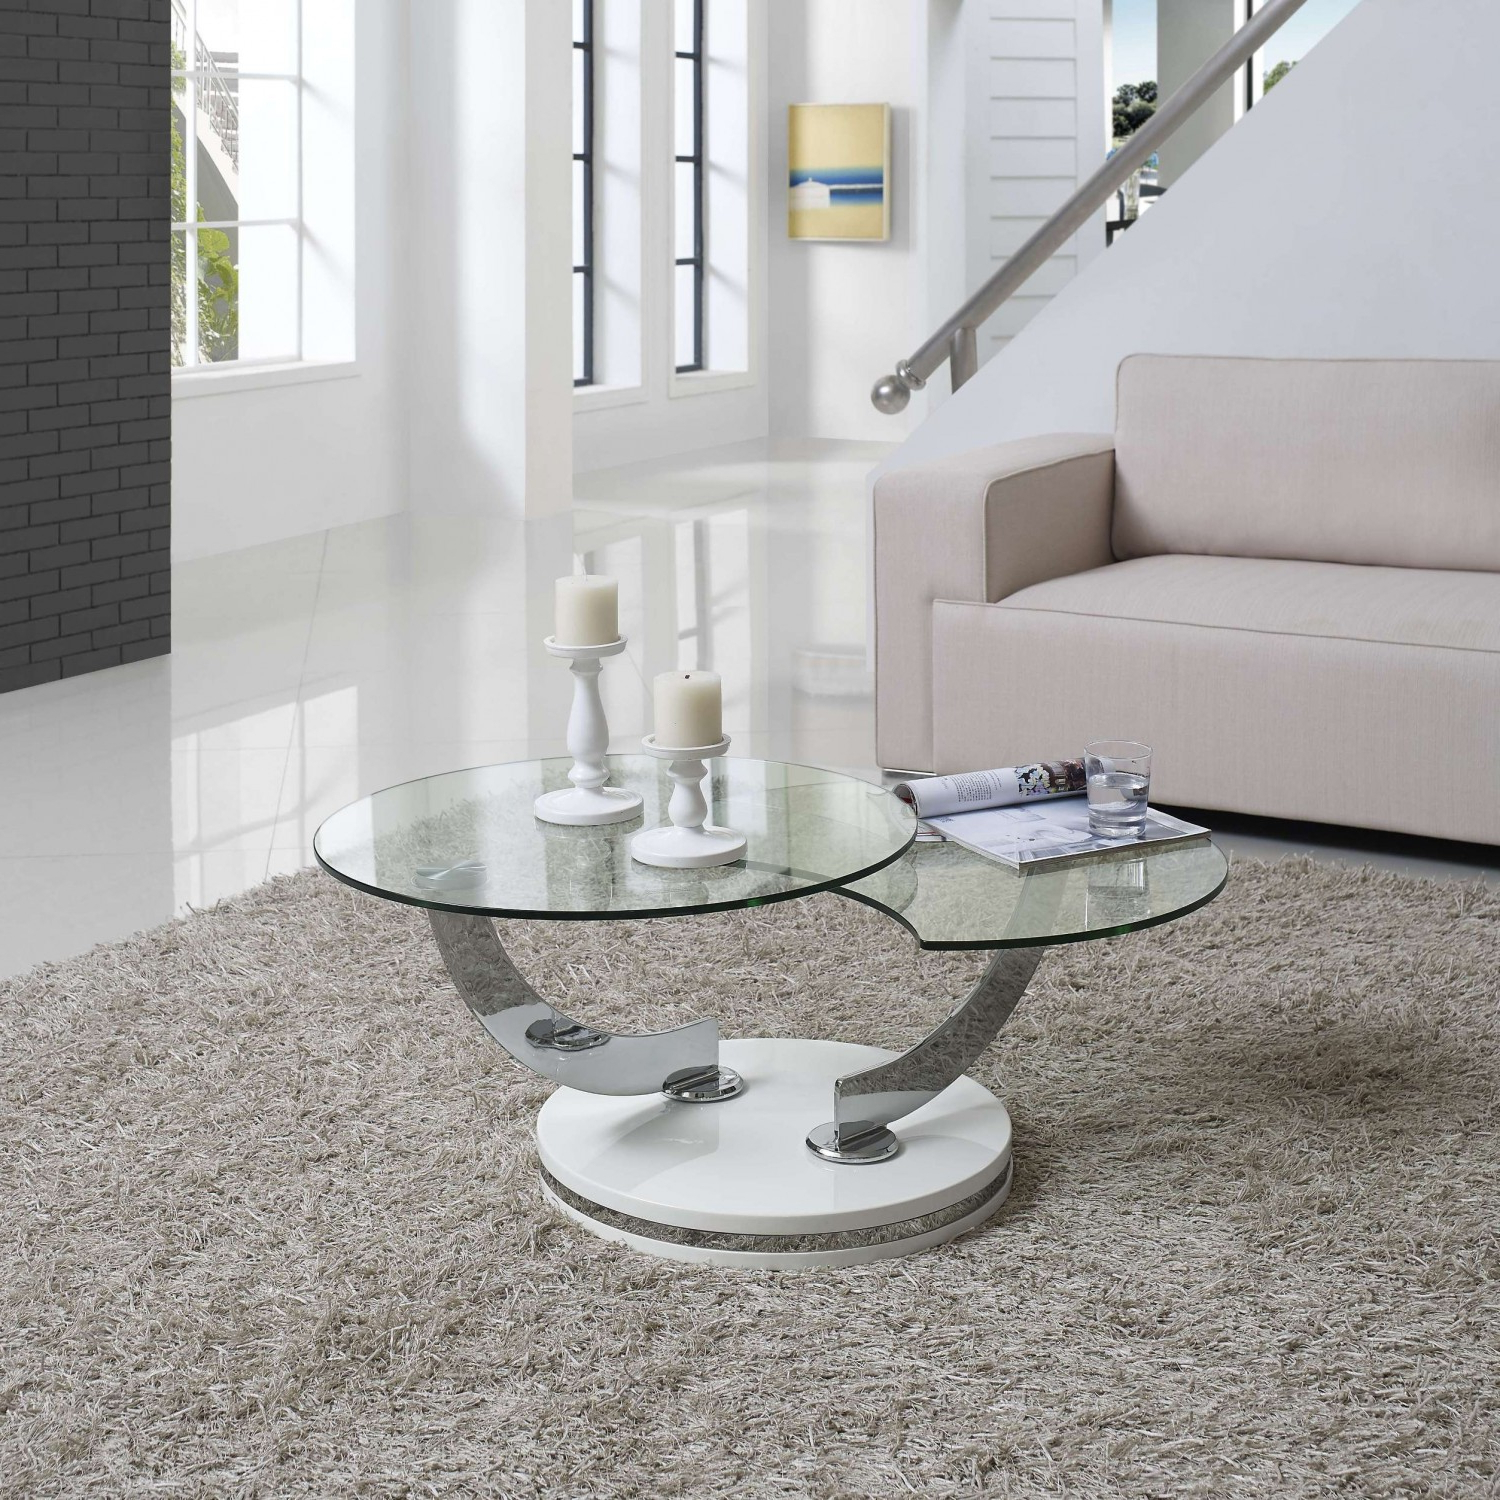 Spin Rotating Coffee Tables Regarding Most Recently Released Rotating Coffee Table – Coffee Drinker (Gallery 15 of 20)